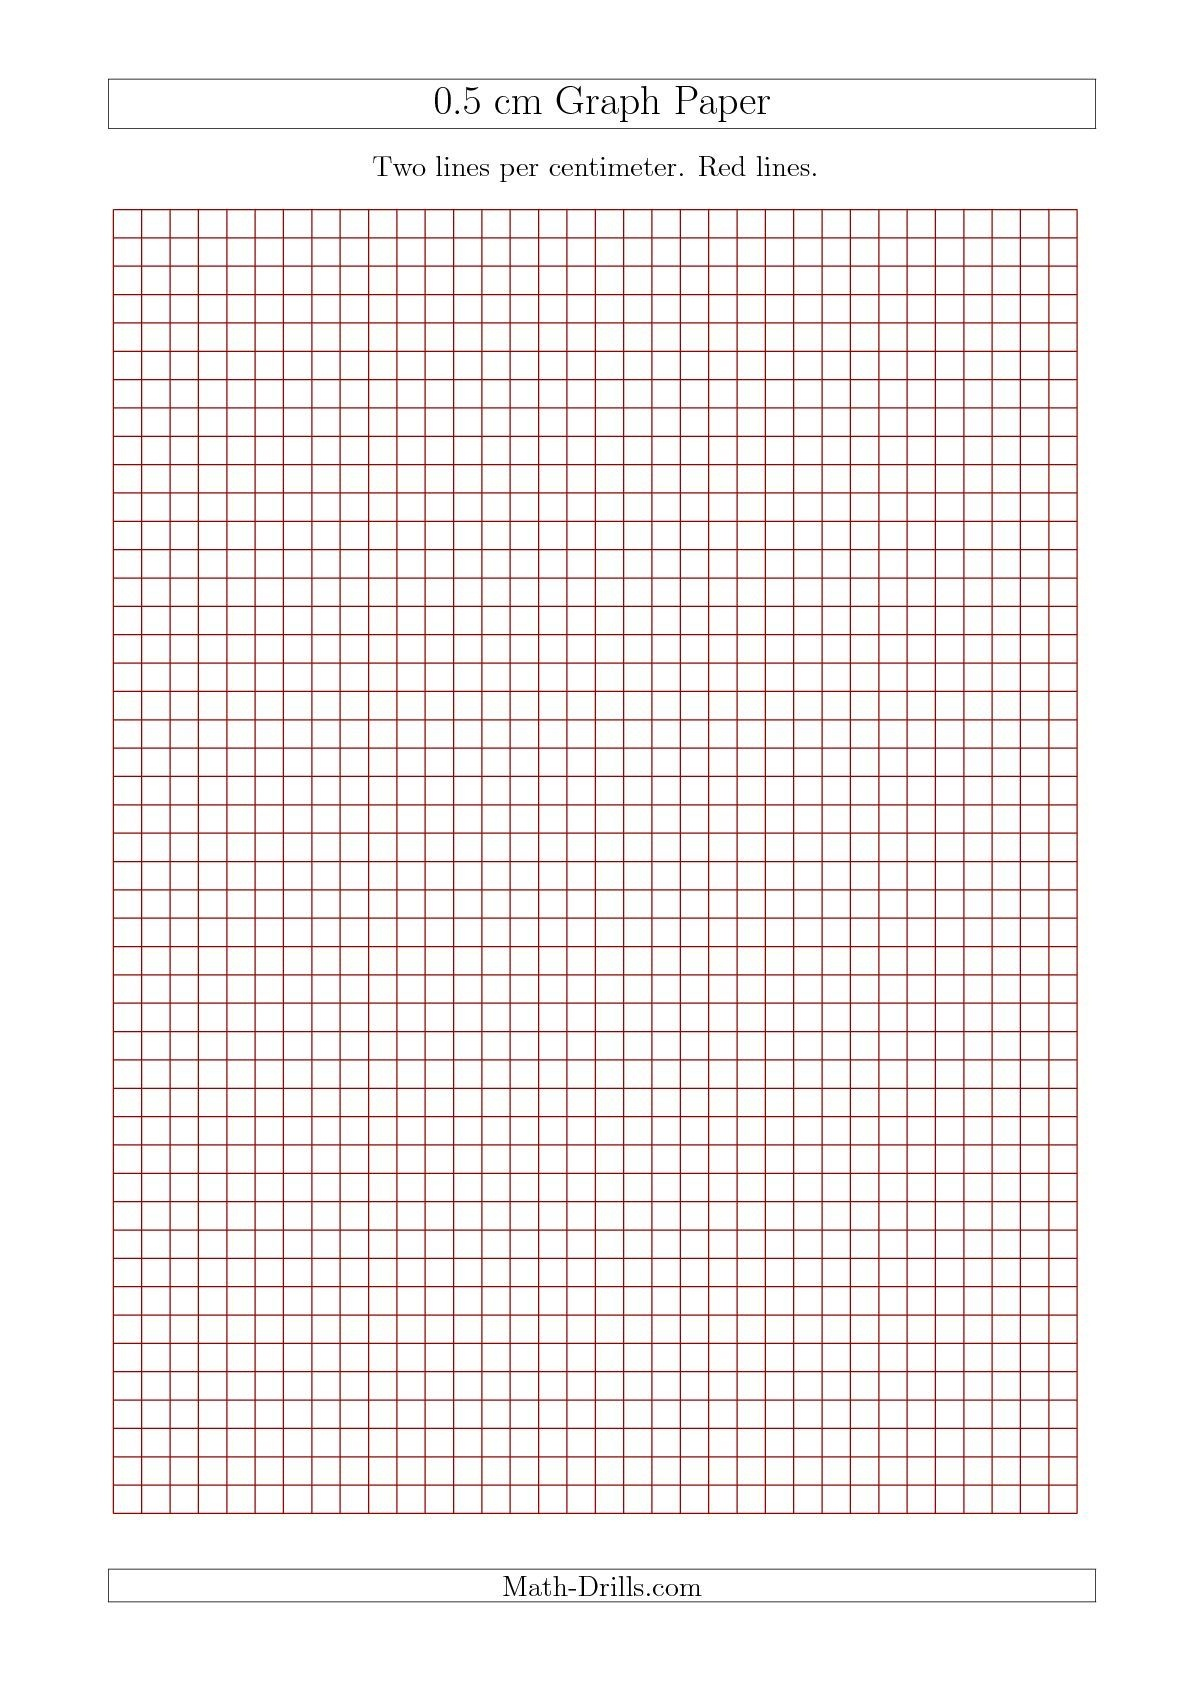 New 2015-09-17! 0.5 Cm Graph Paper With Red Lines (A4 Size) Math - Free Printable Graph Paper Black Lines